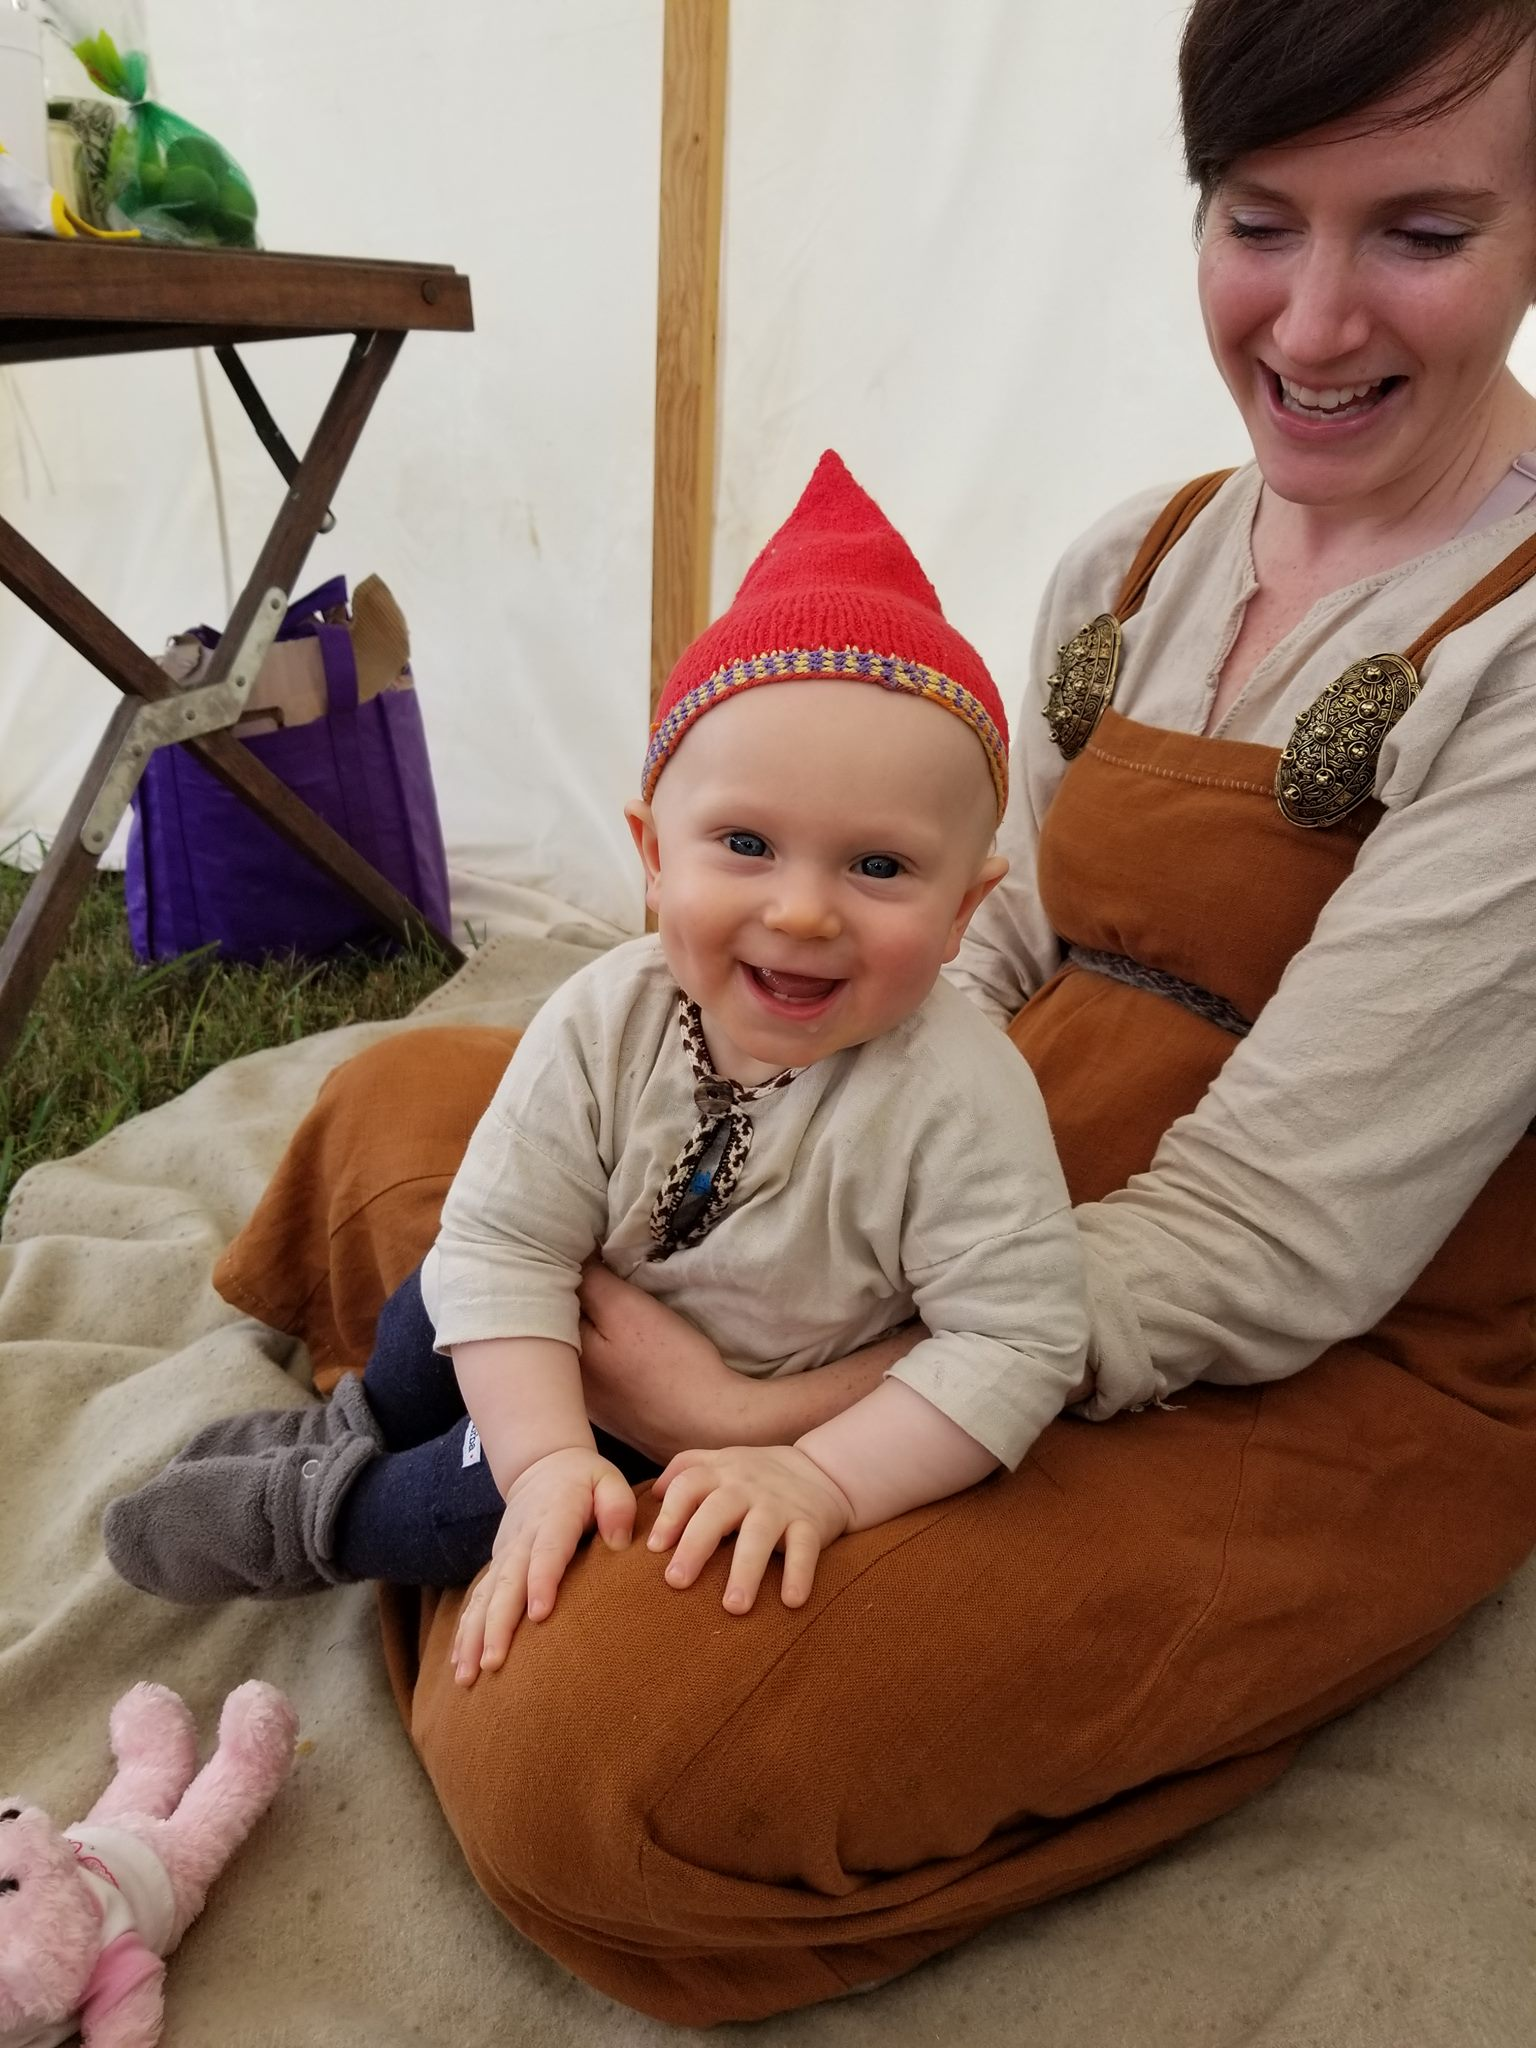 A baby wearing a bright red pointy hat smiles at the camera.